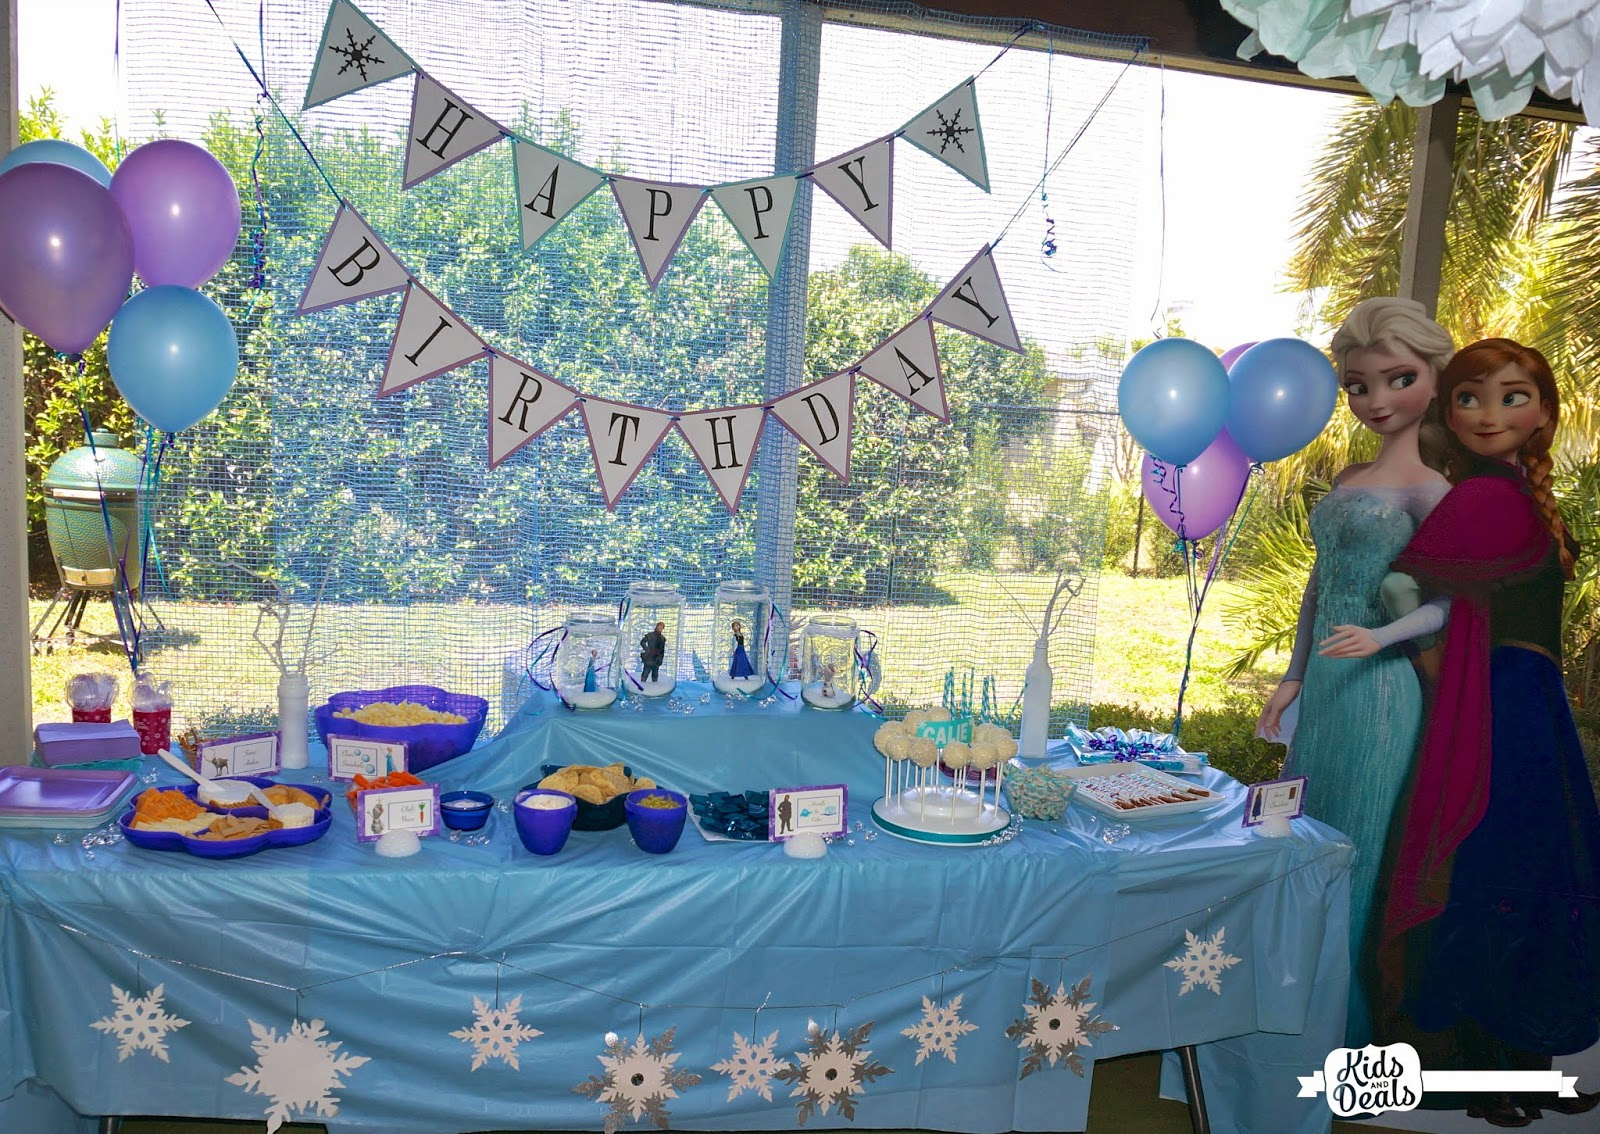 Kids and Deals Disney Frozen Birthday Party